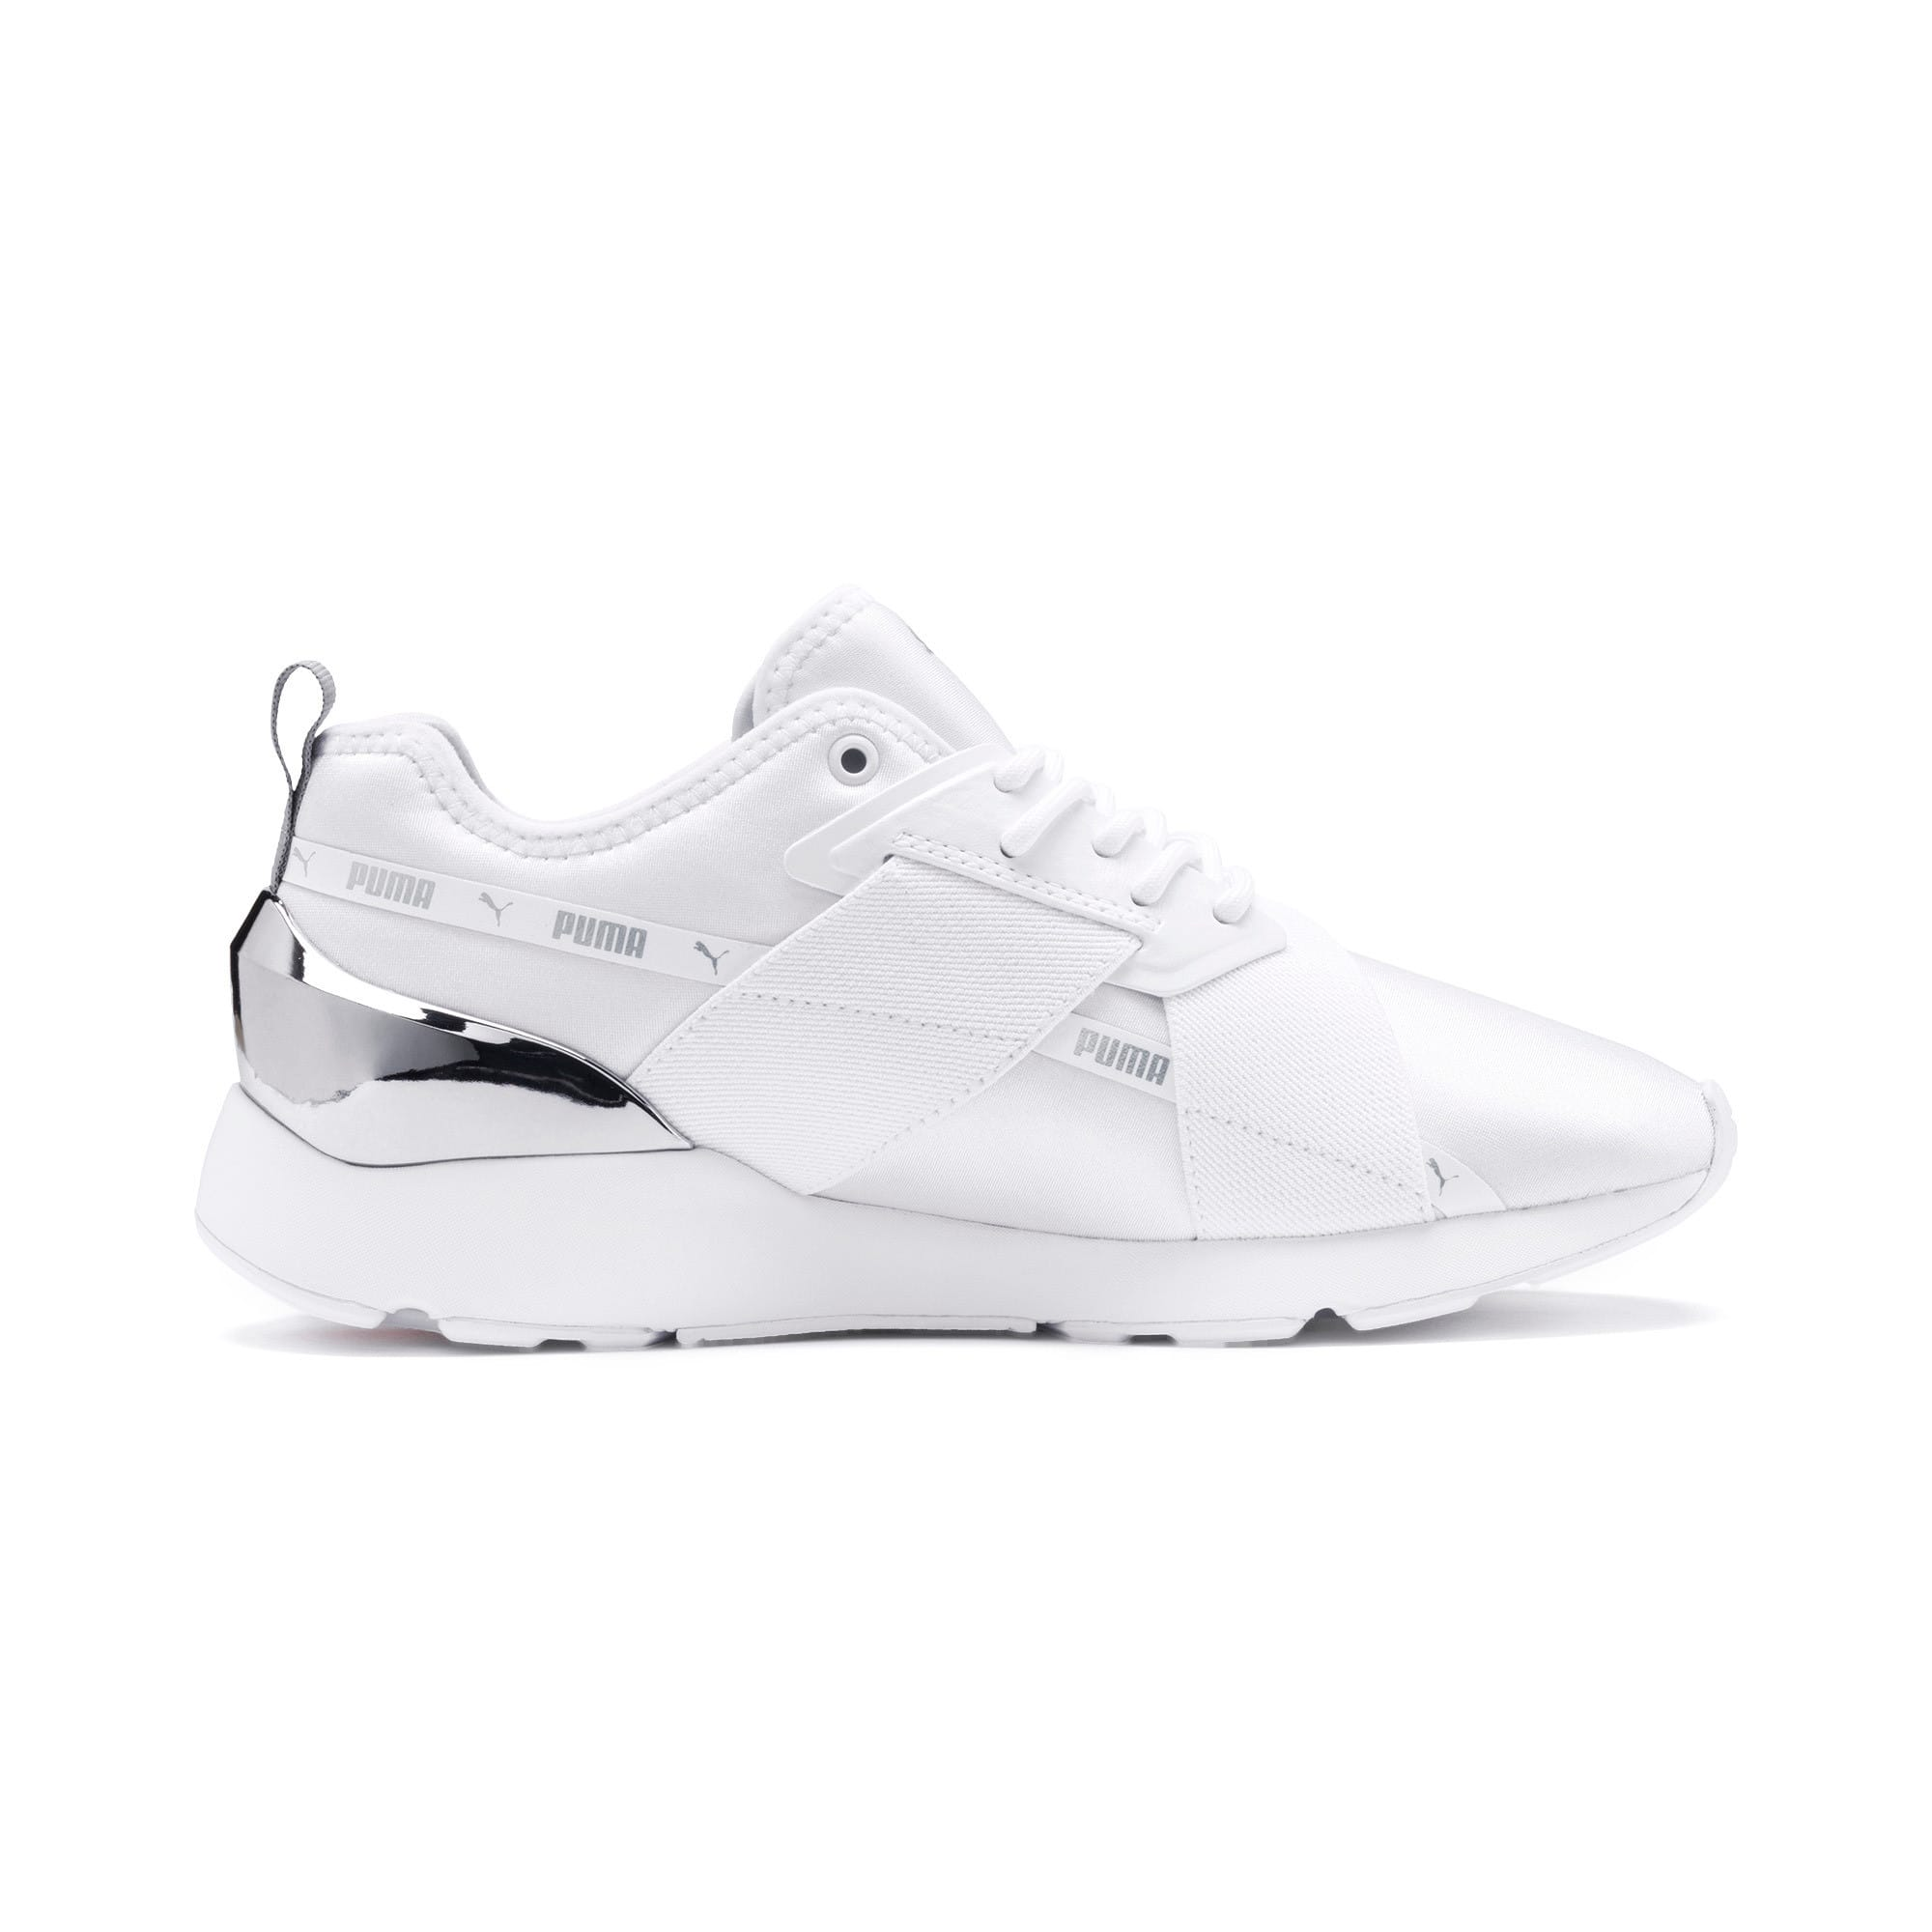 Anteprima 6 di Muse X-2 Metallic Women's Trainers, Puma White, medio